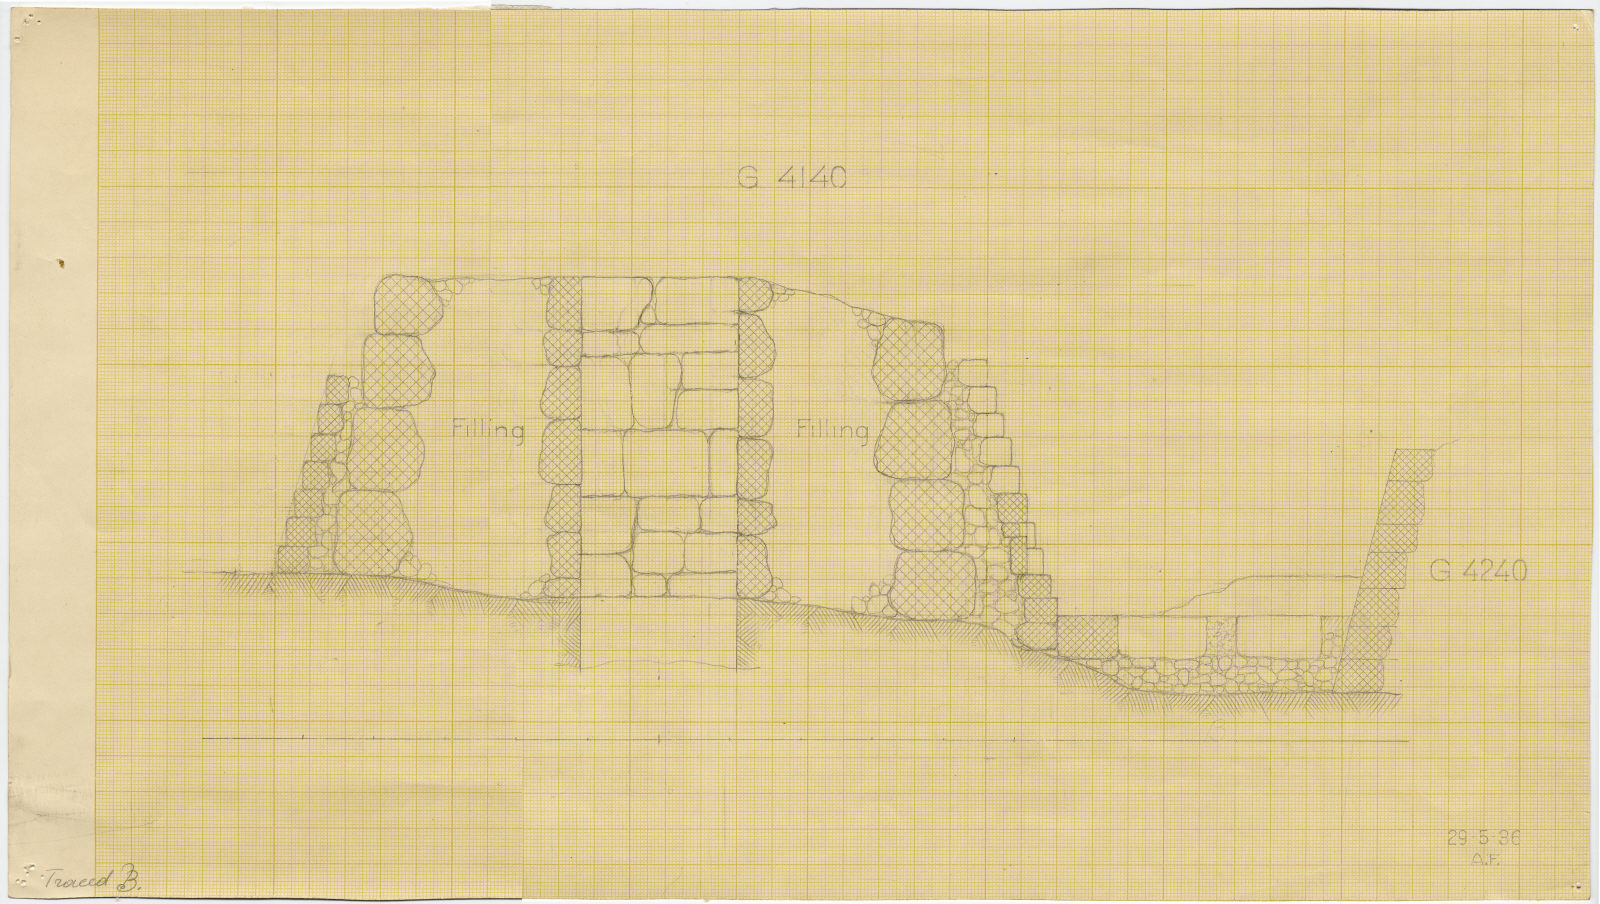 Maps and plans: Section of G 4140, with position of G 4240